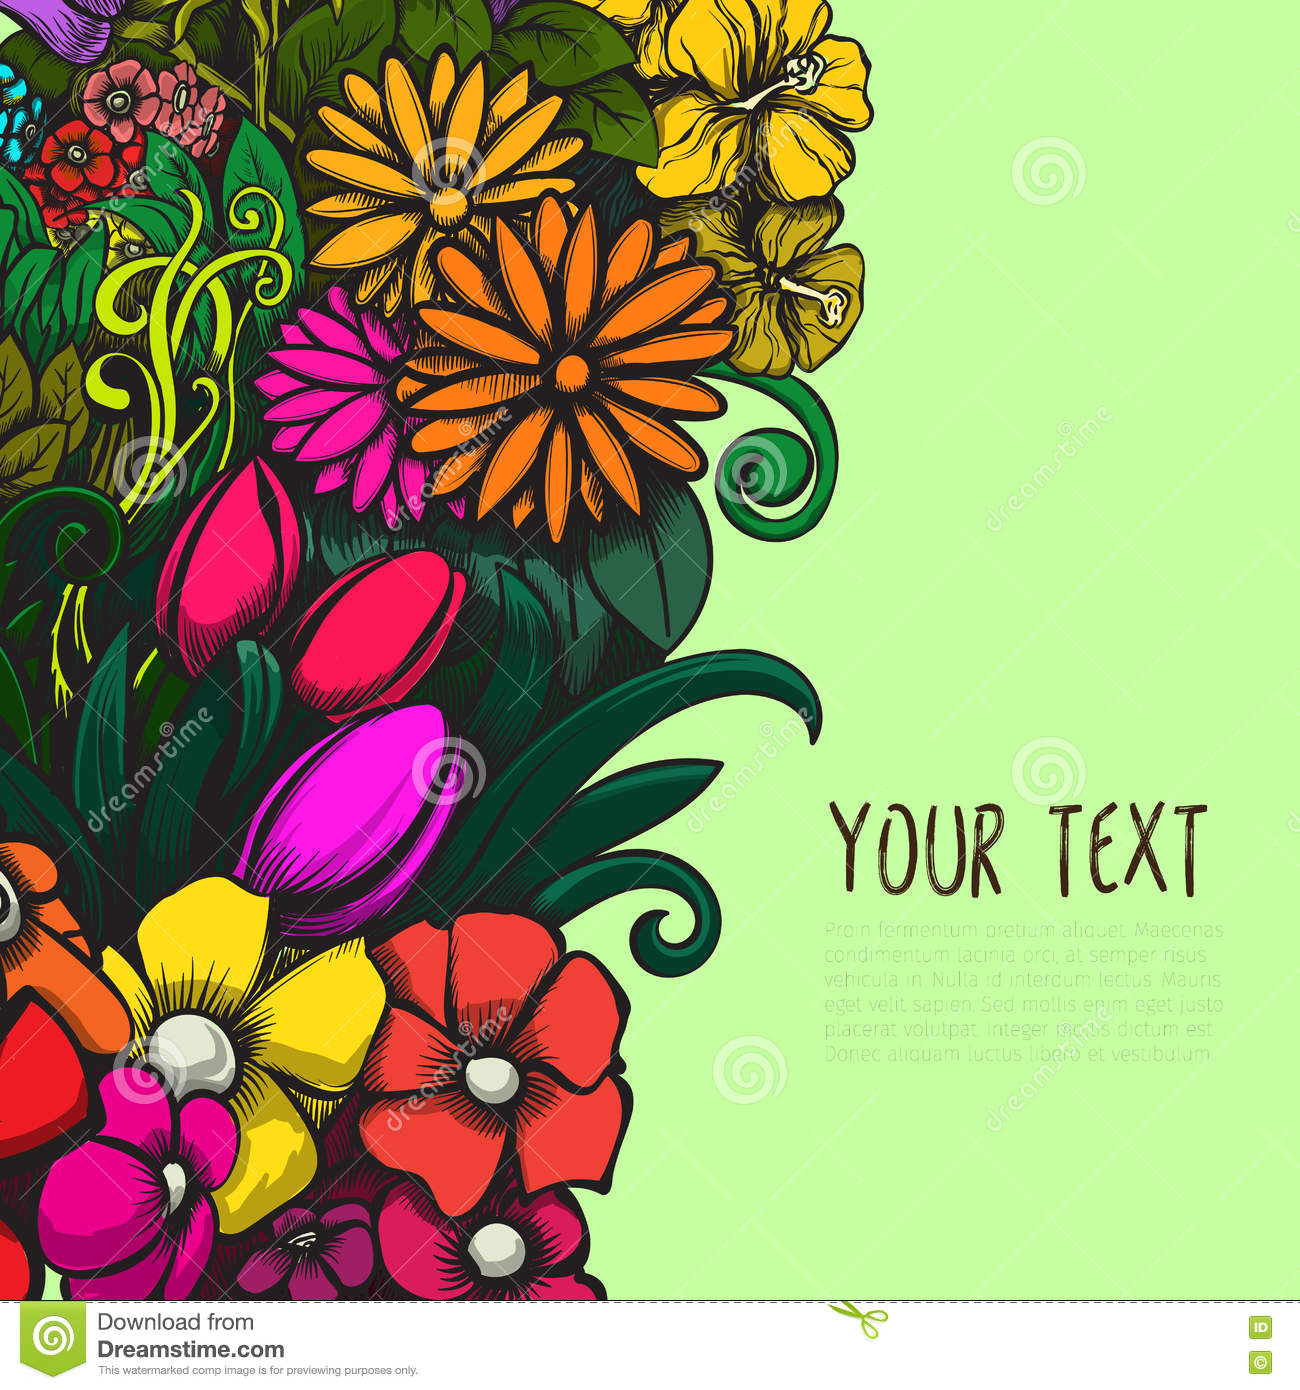 Beautiful Bright Vector Design With Colorful Floral Background For